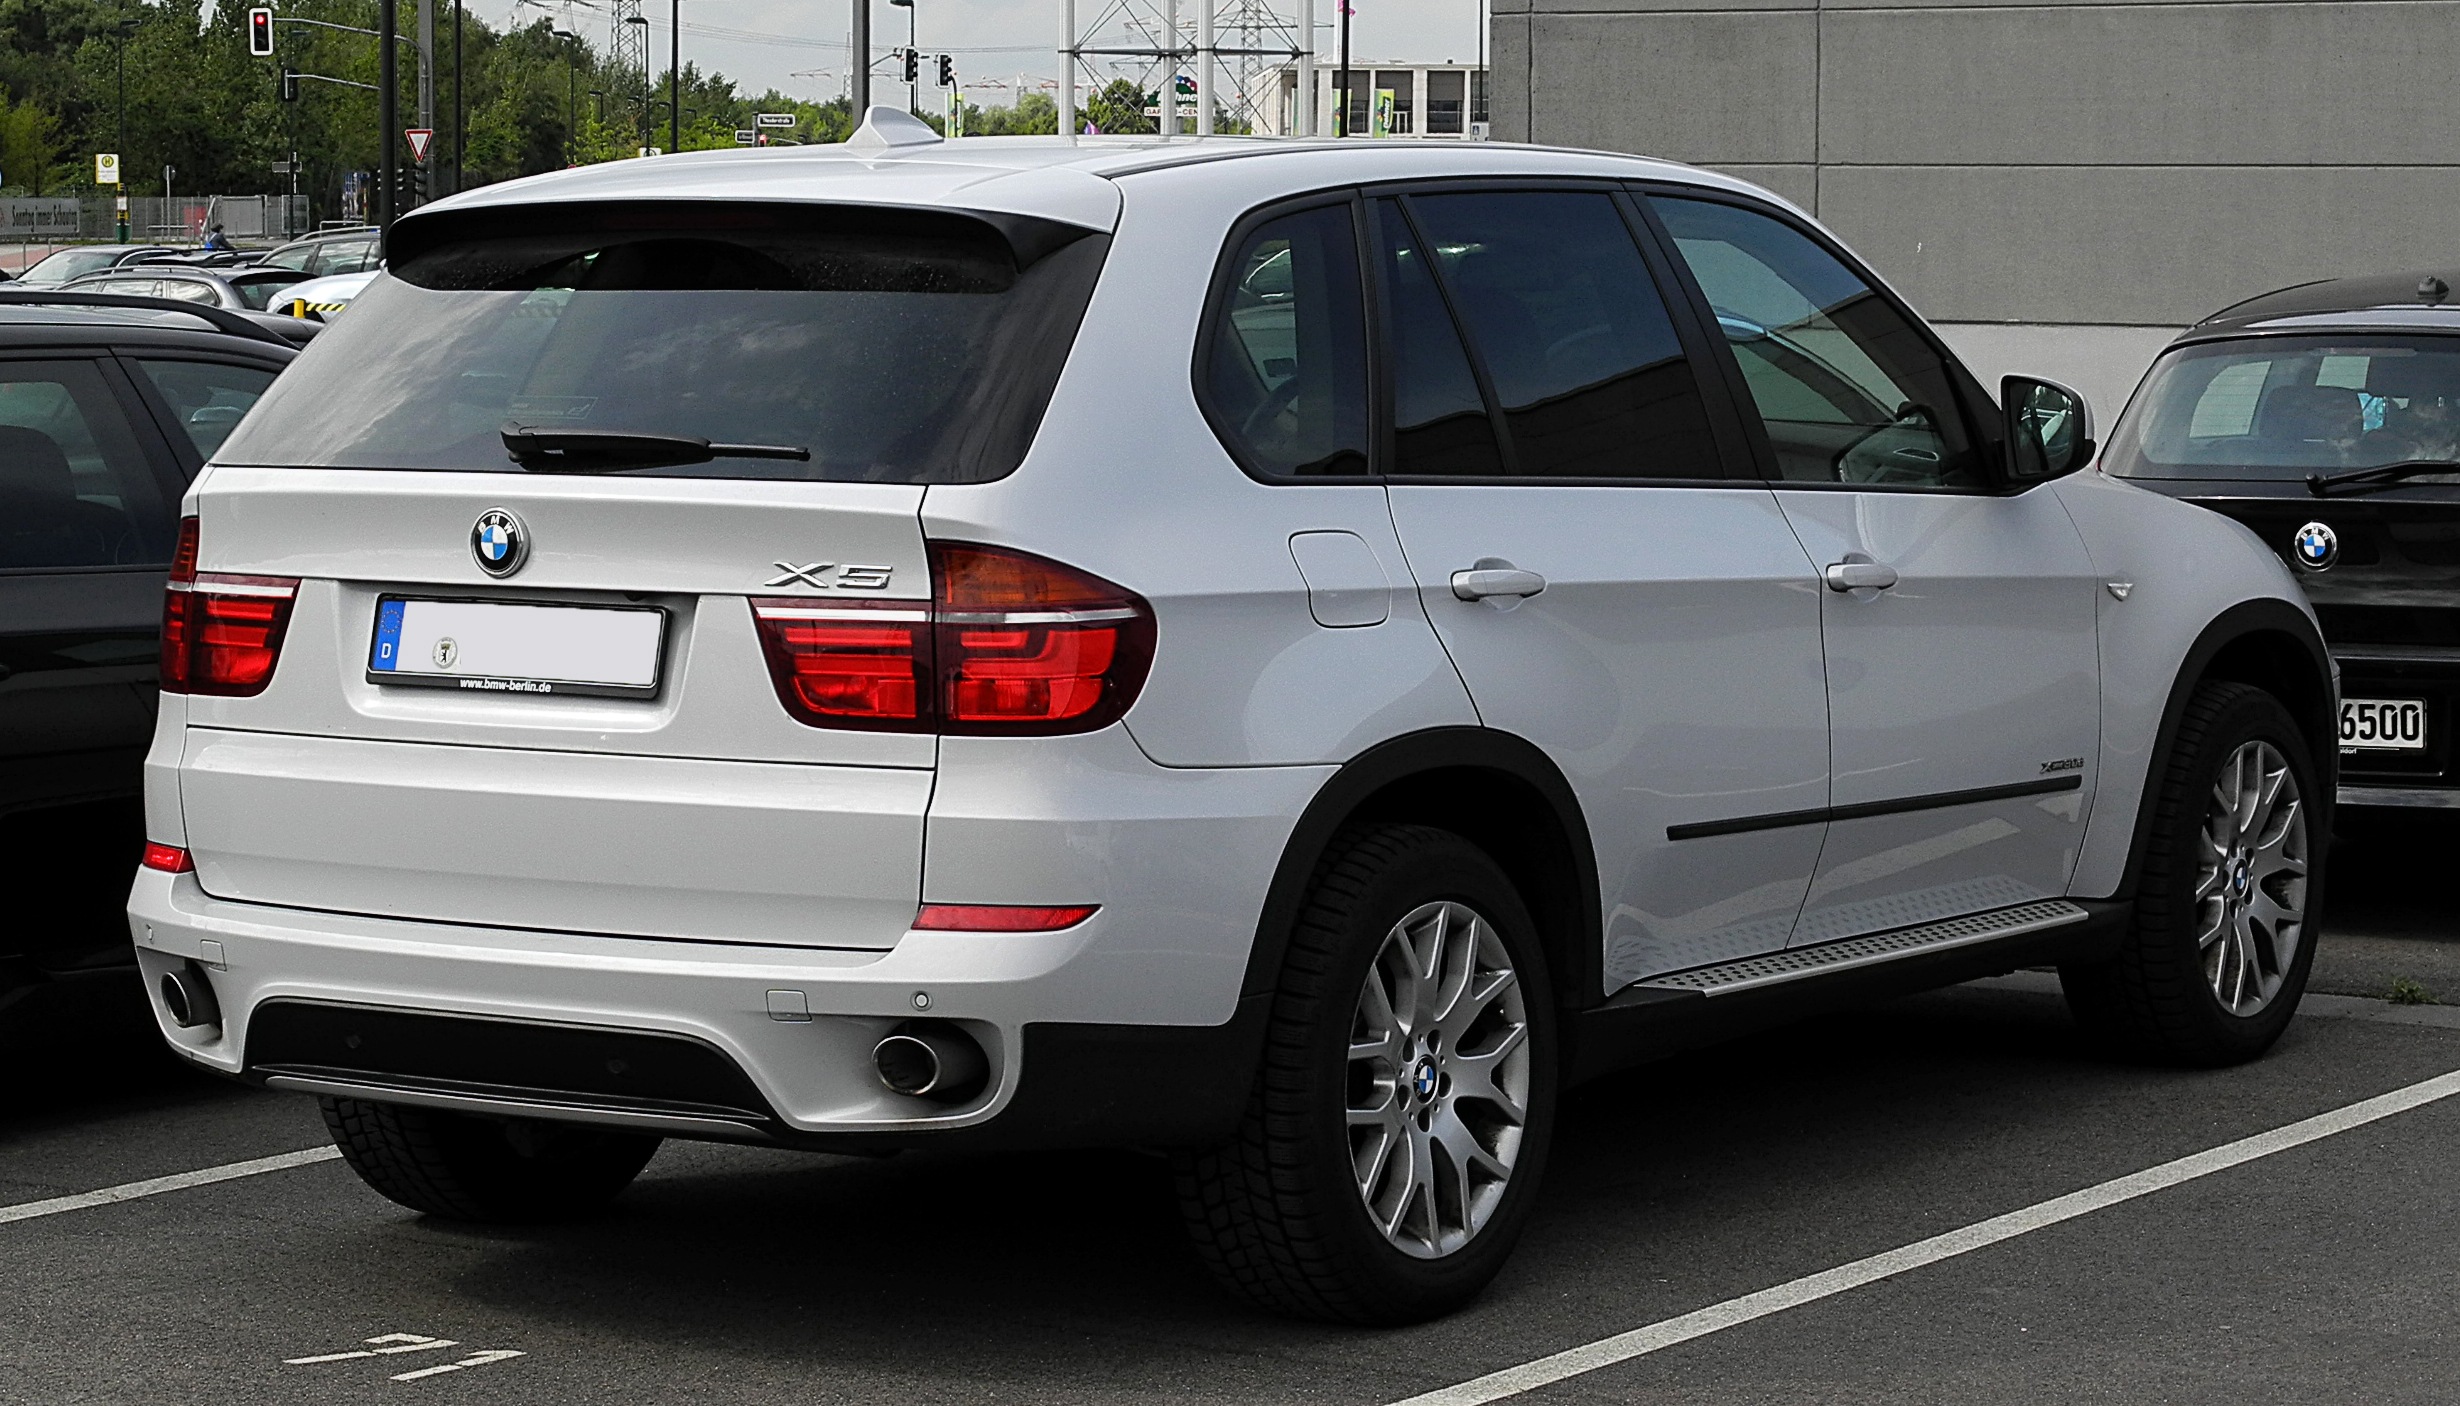 file bmw x5 xdrive30d e70 facelift heckansicht 2 juli 2011 d wikimedia. Black Bedroom Furniture Sets. Home Design Ideas